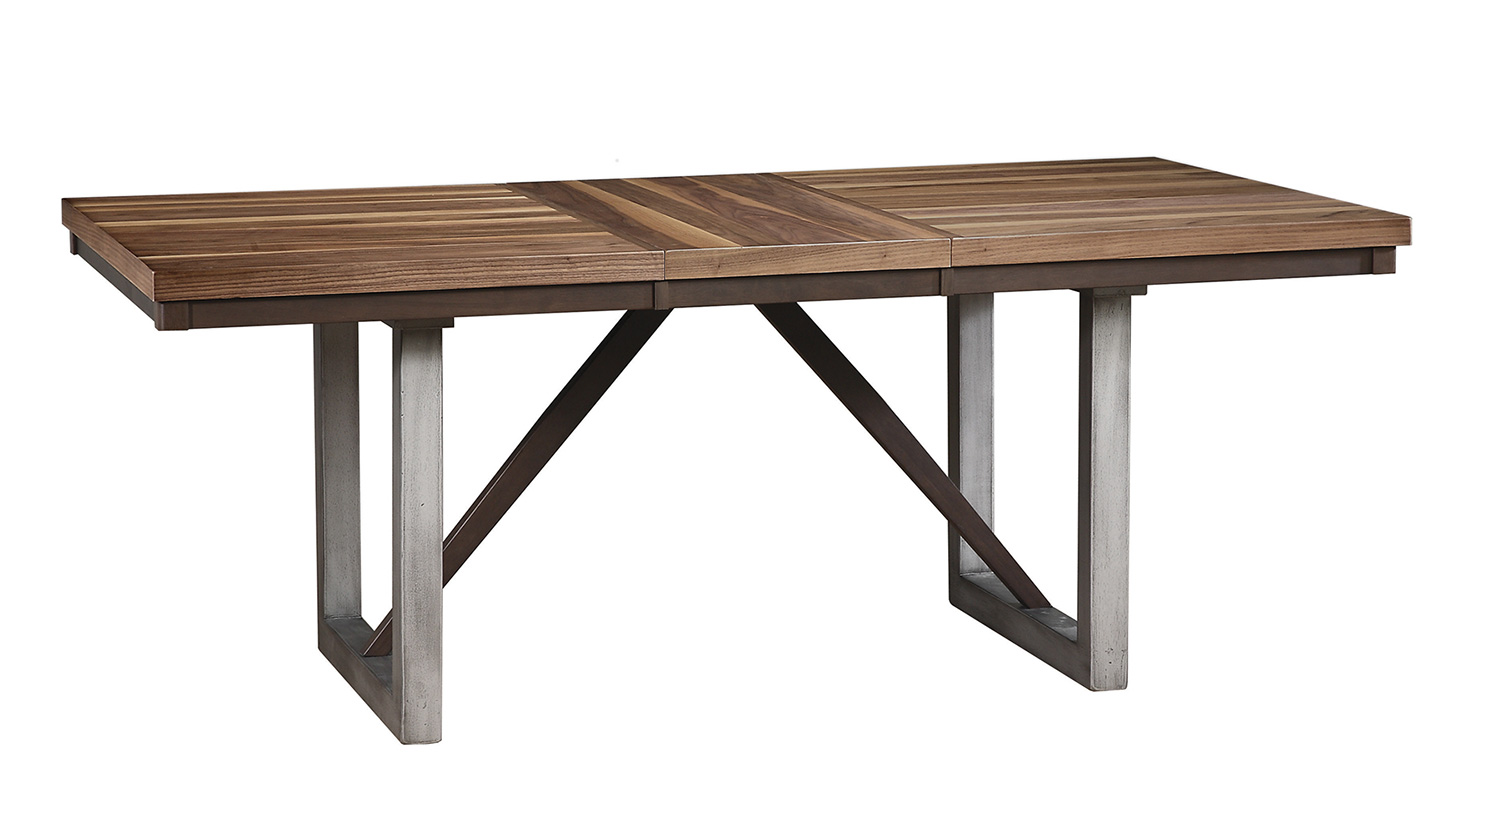 Coaster Spring Creek Rectangular Dining Table with Leaf - Natural Walnut